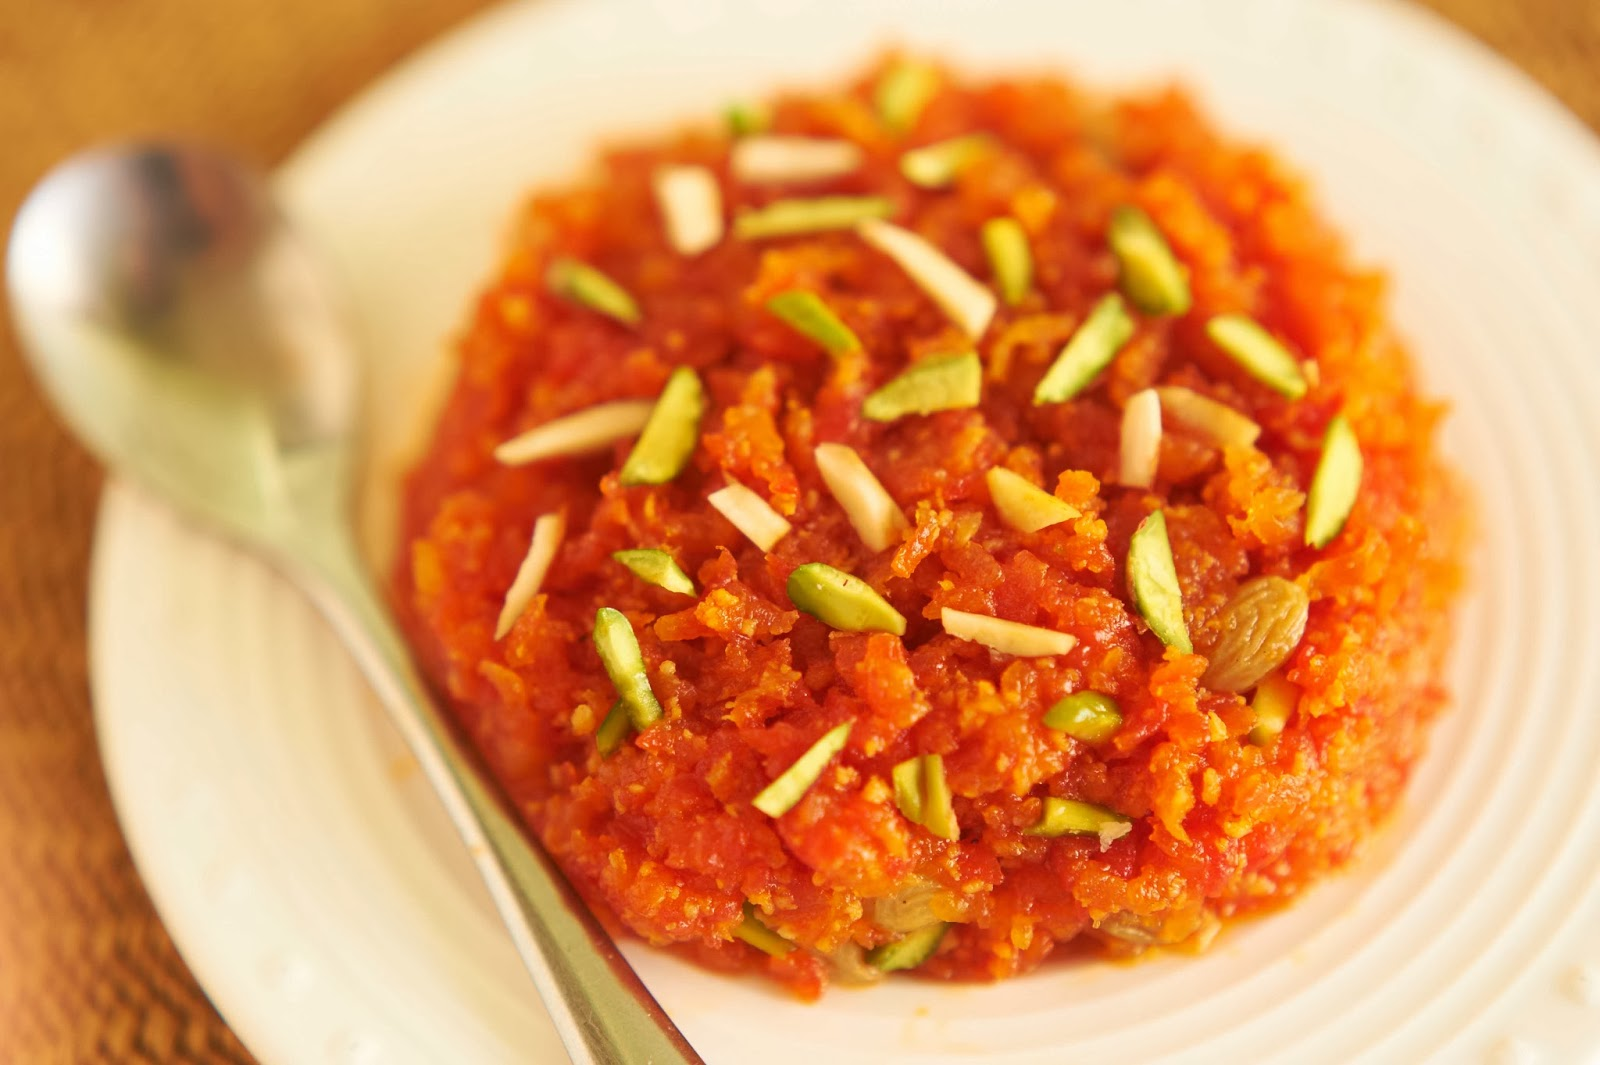 gajar halwa by githa hariharan essays Sangam indian cuisine: alu gobi was delicious, rotis were good enough, gajar halwa was good too ask hariharan r about sangam indian cuisine.